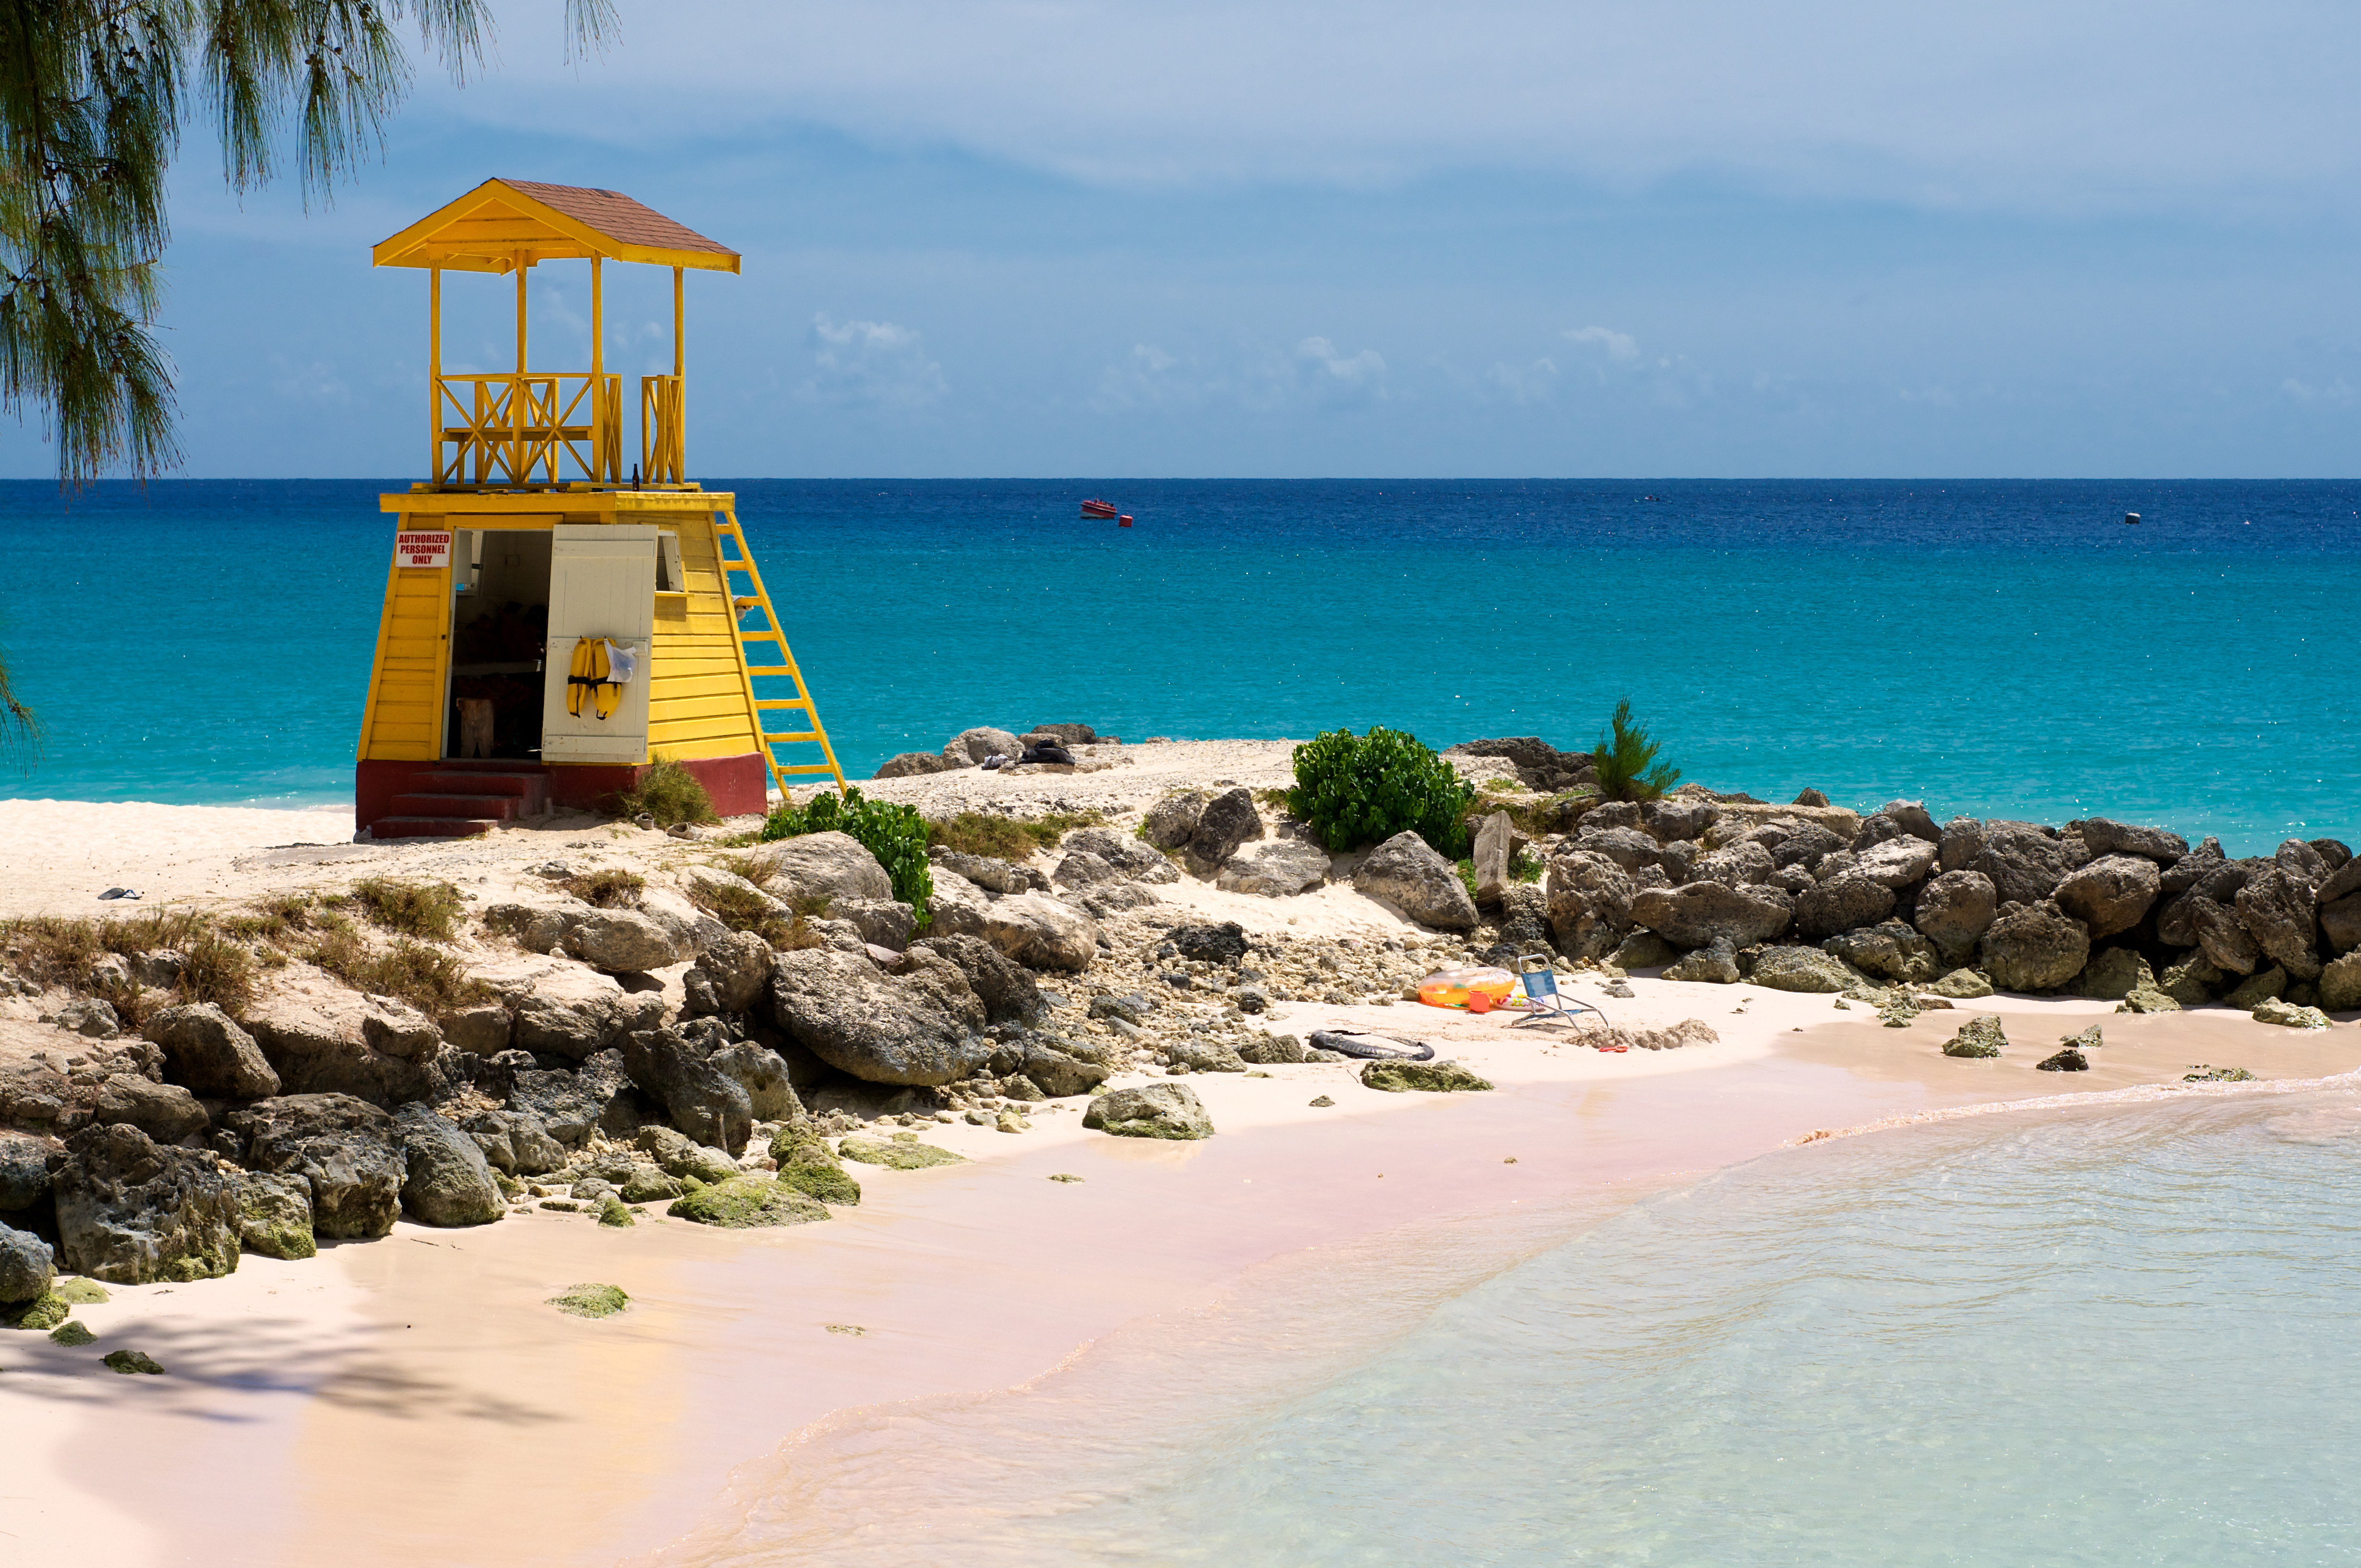 miami beach | oistins, barbados attractions - lonely planet